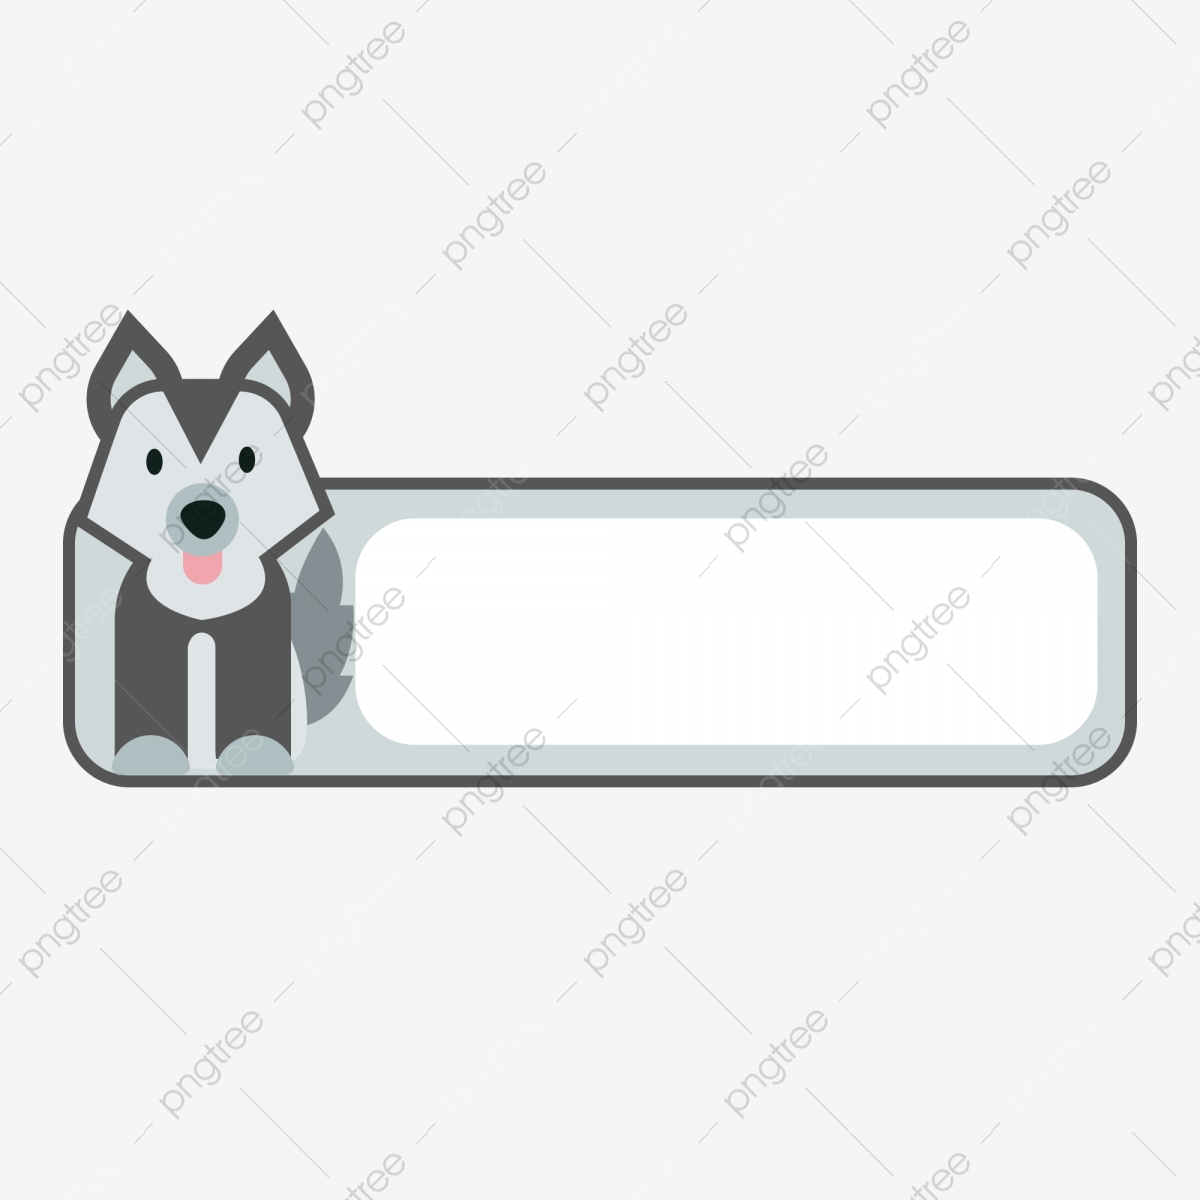 hight resolution of category dog